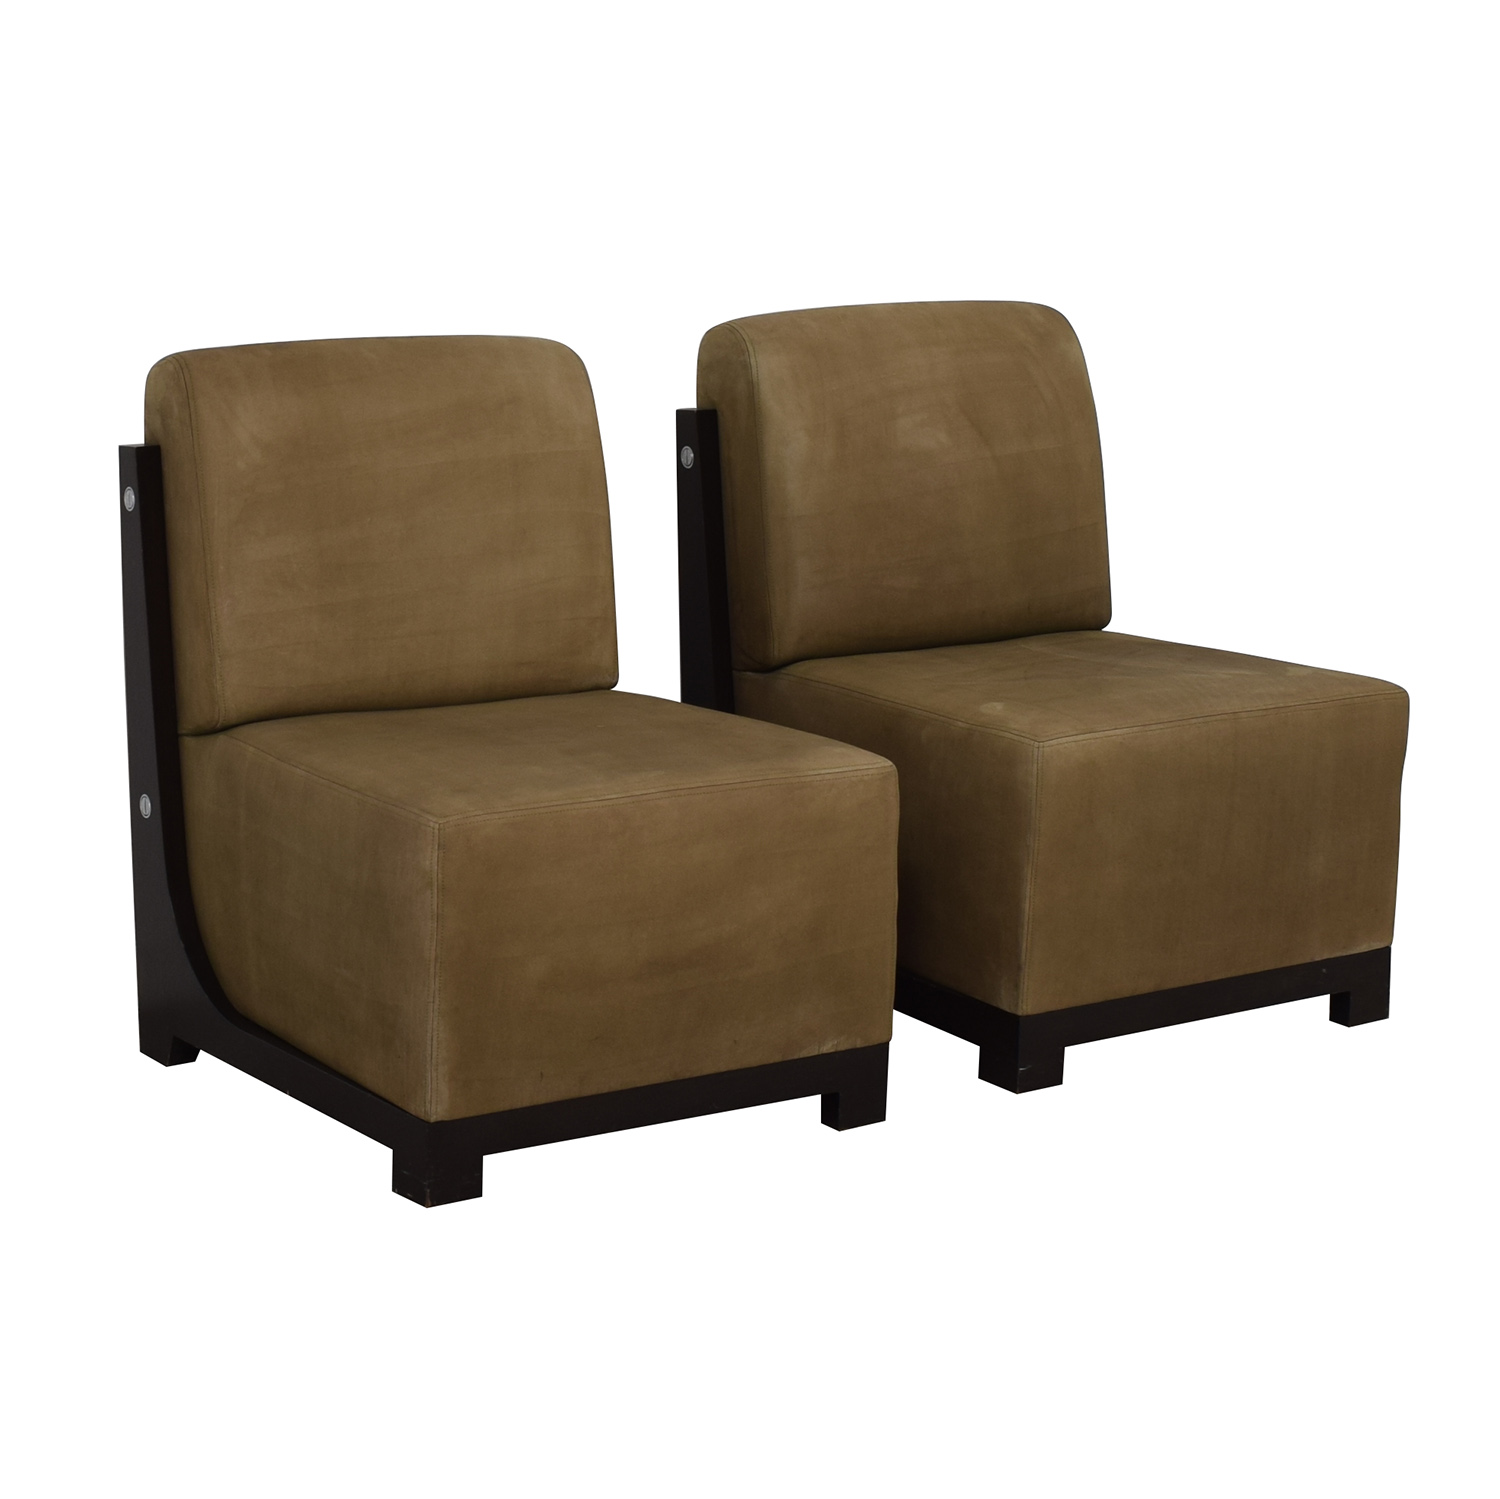 Furniture Masters Furniture Masters Tan Accent Chairs used